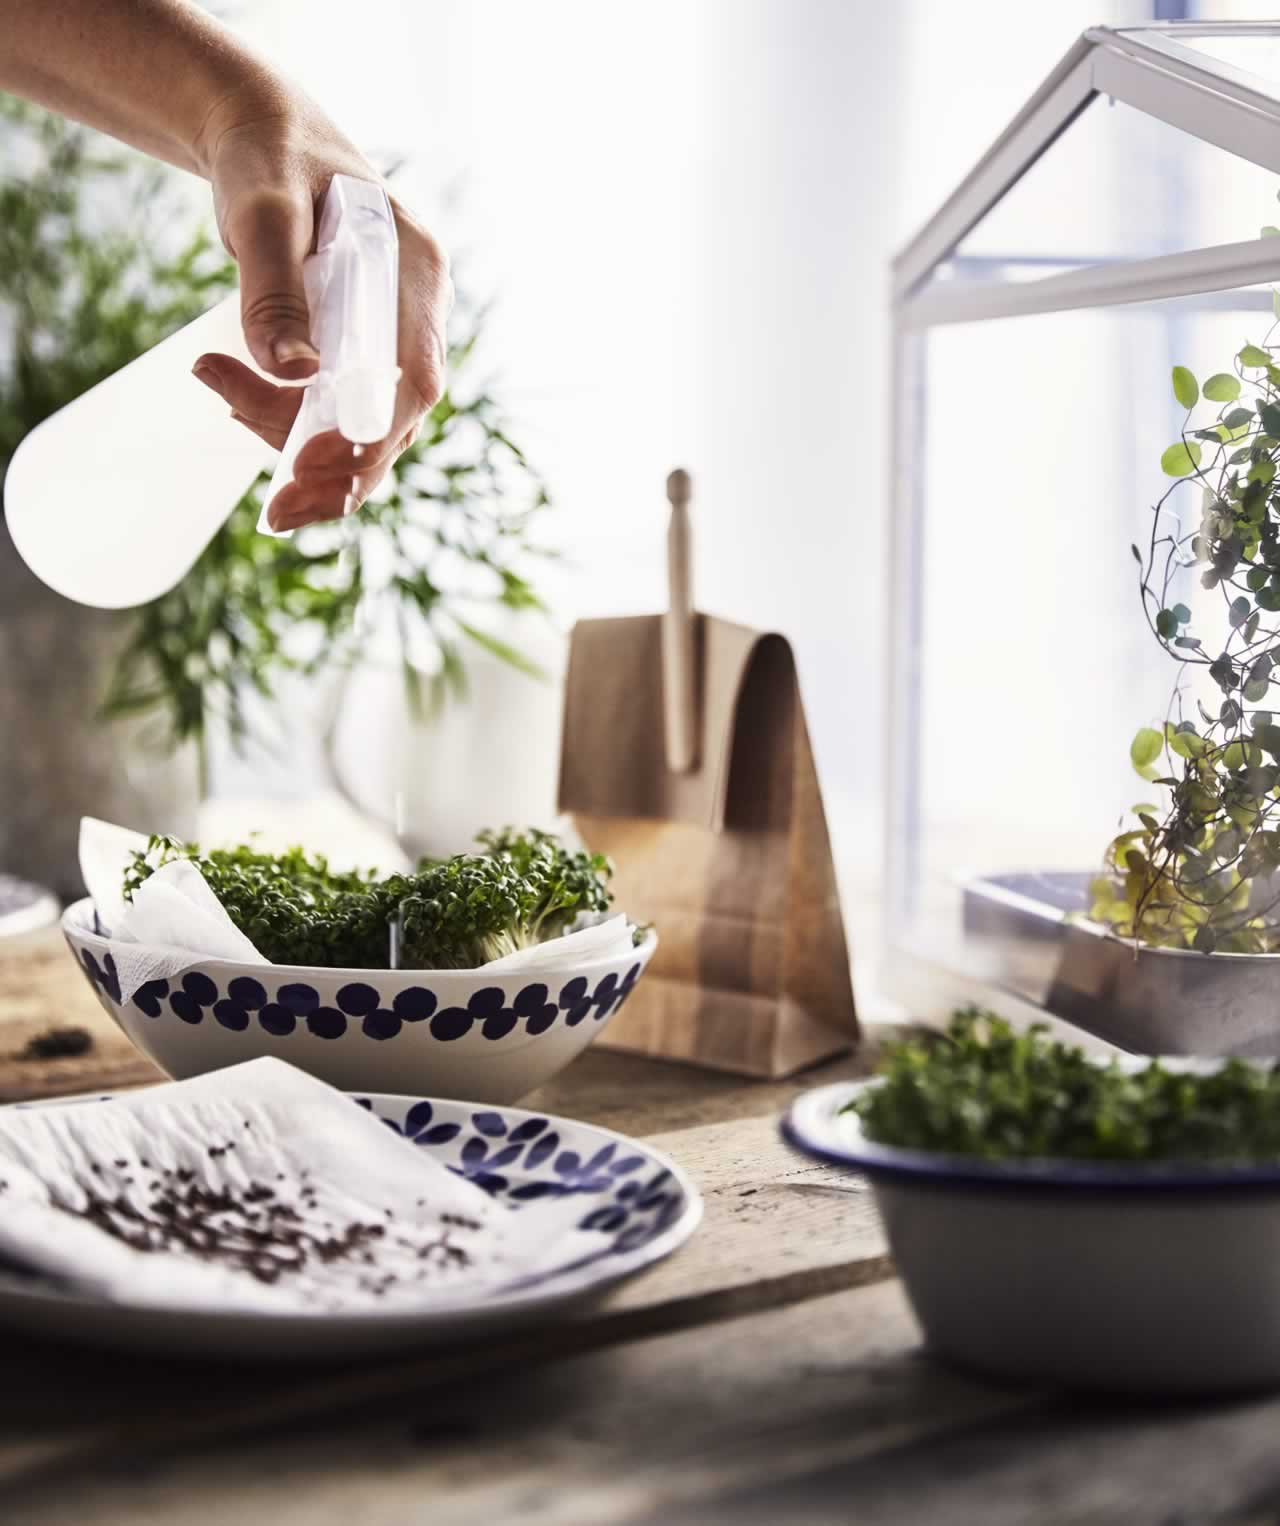 IKEA Ideas - The good effects of growing plants